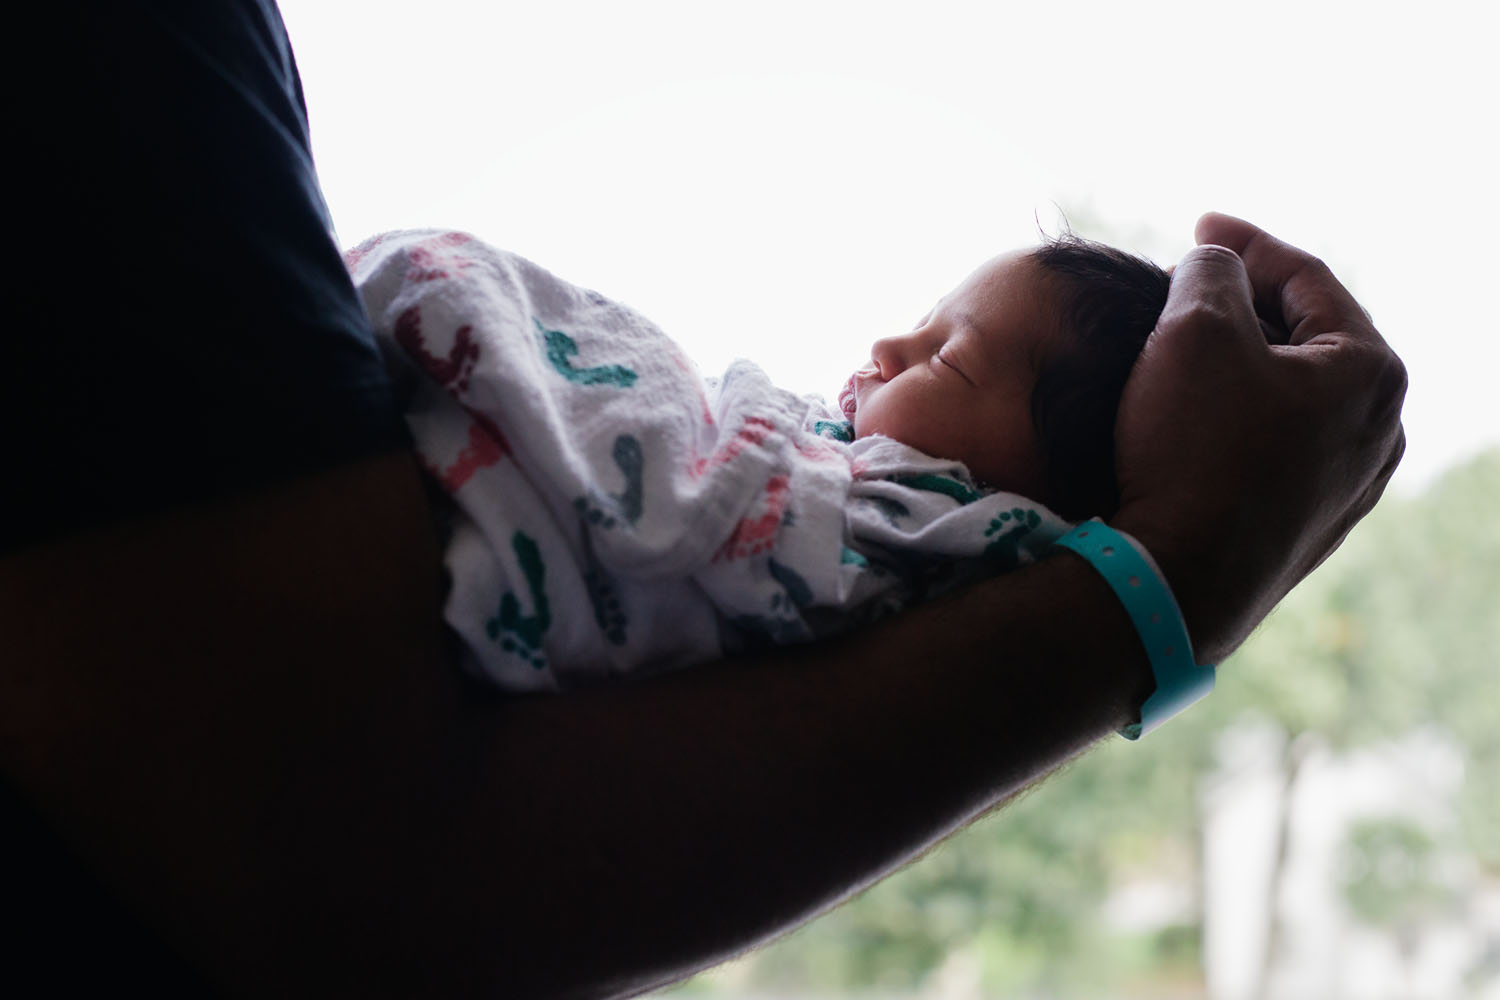 Fresh 48 Newborn Photography of baby in dad's arms at Valley Hospital in Ridgewood, New Jersey